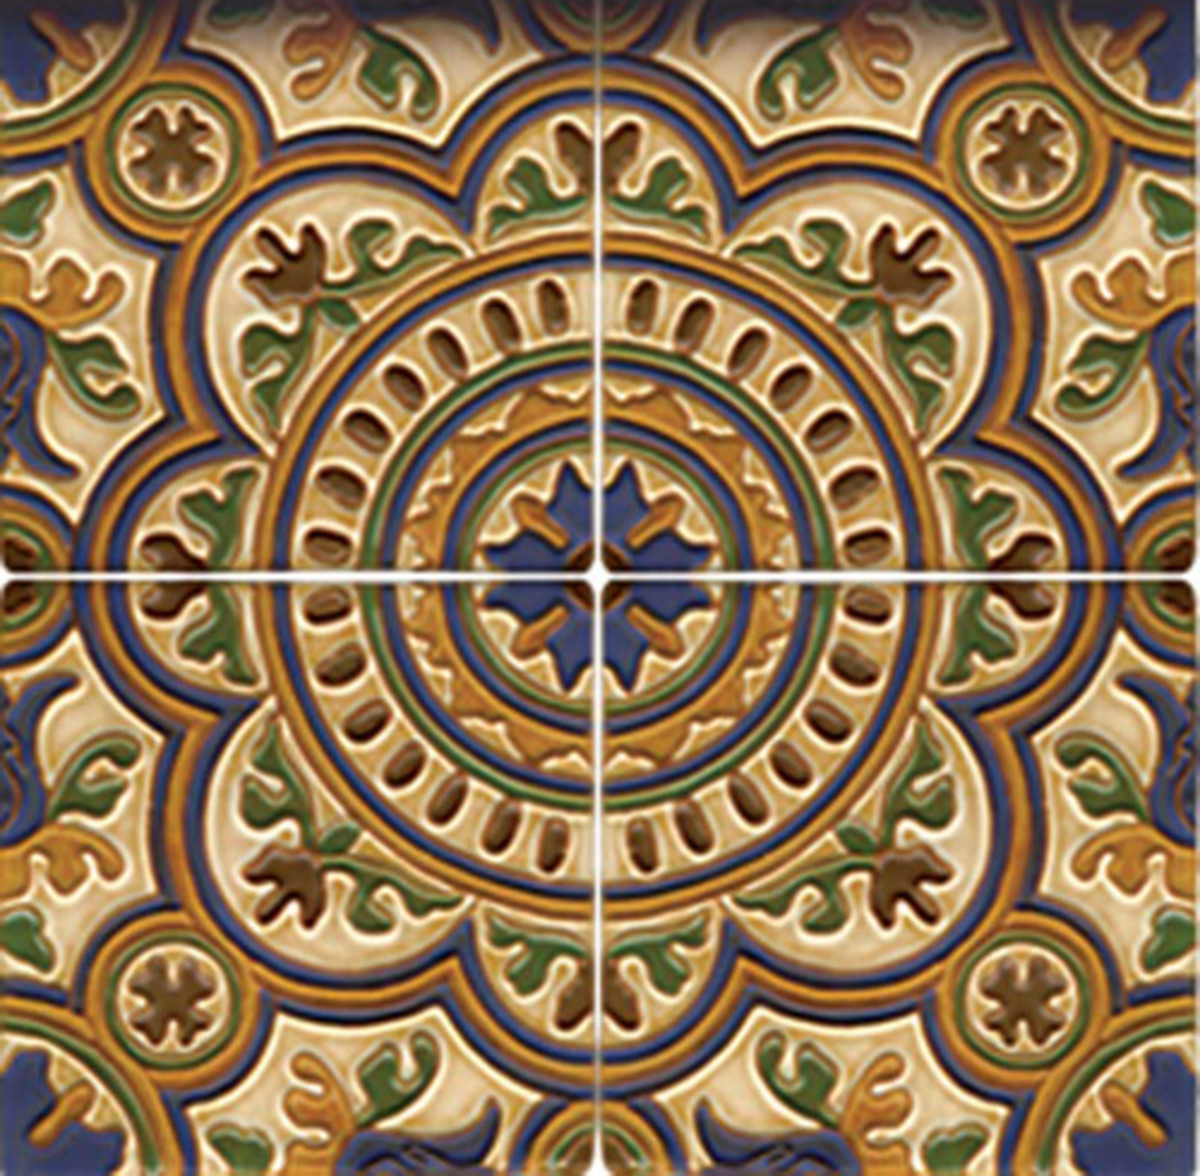 Geometric and floral Hispano–Moresque tiles from Native Tile & Ceramics.